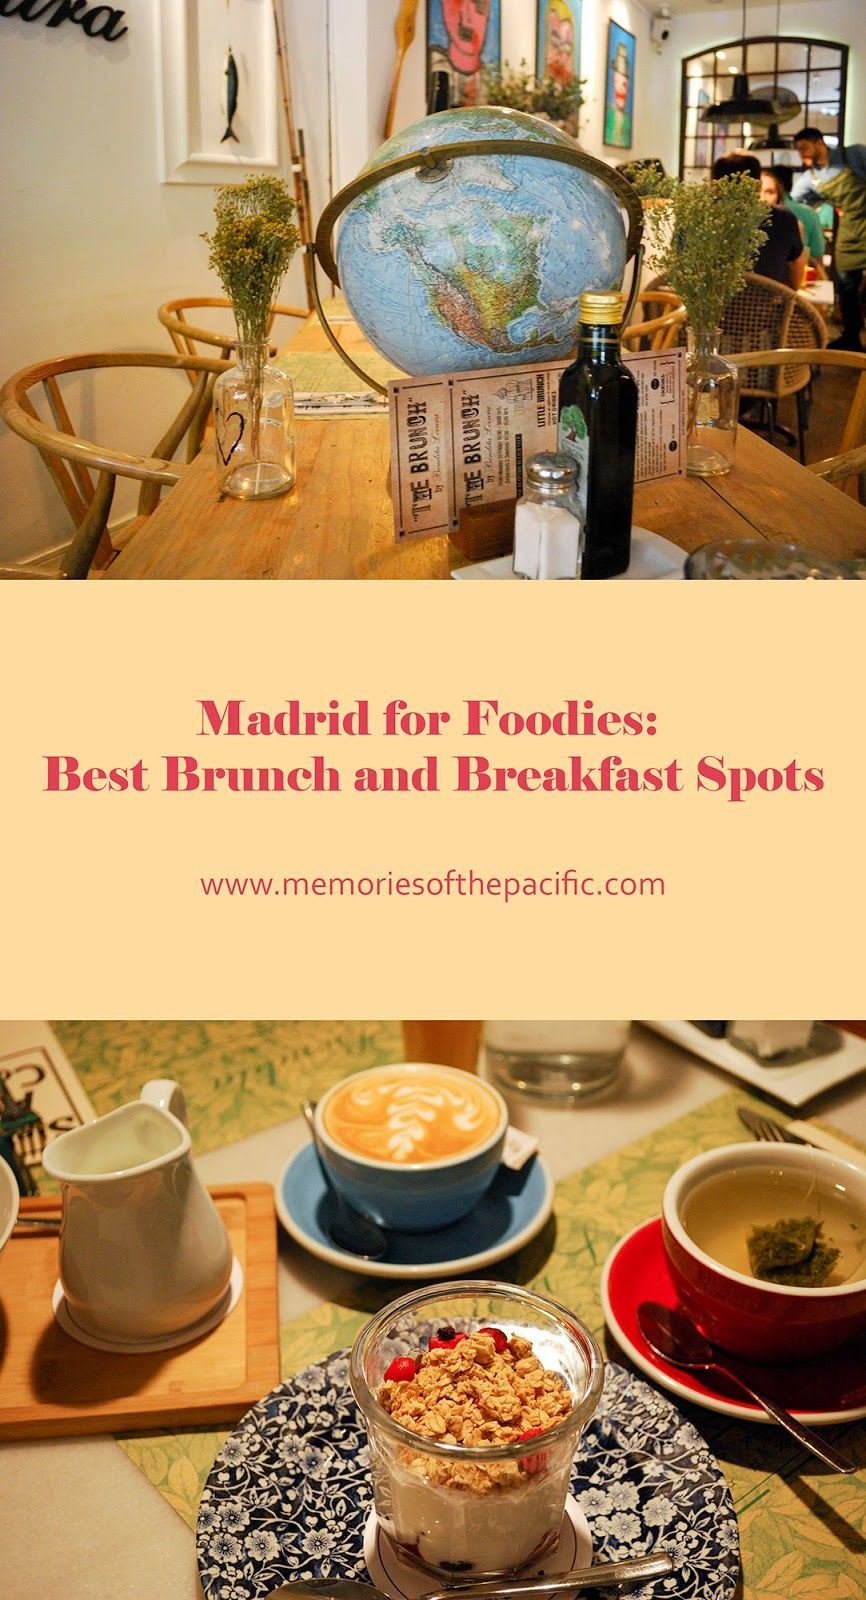 Madrid for Foodies Best Brunch and Breakfast Spots